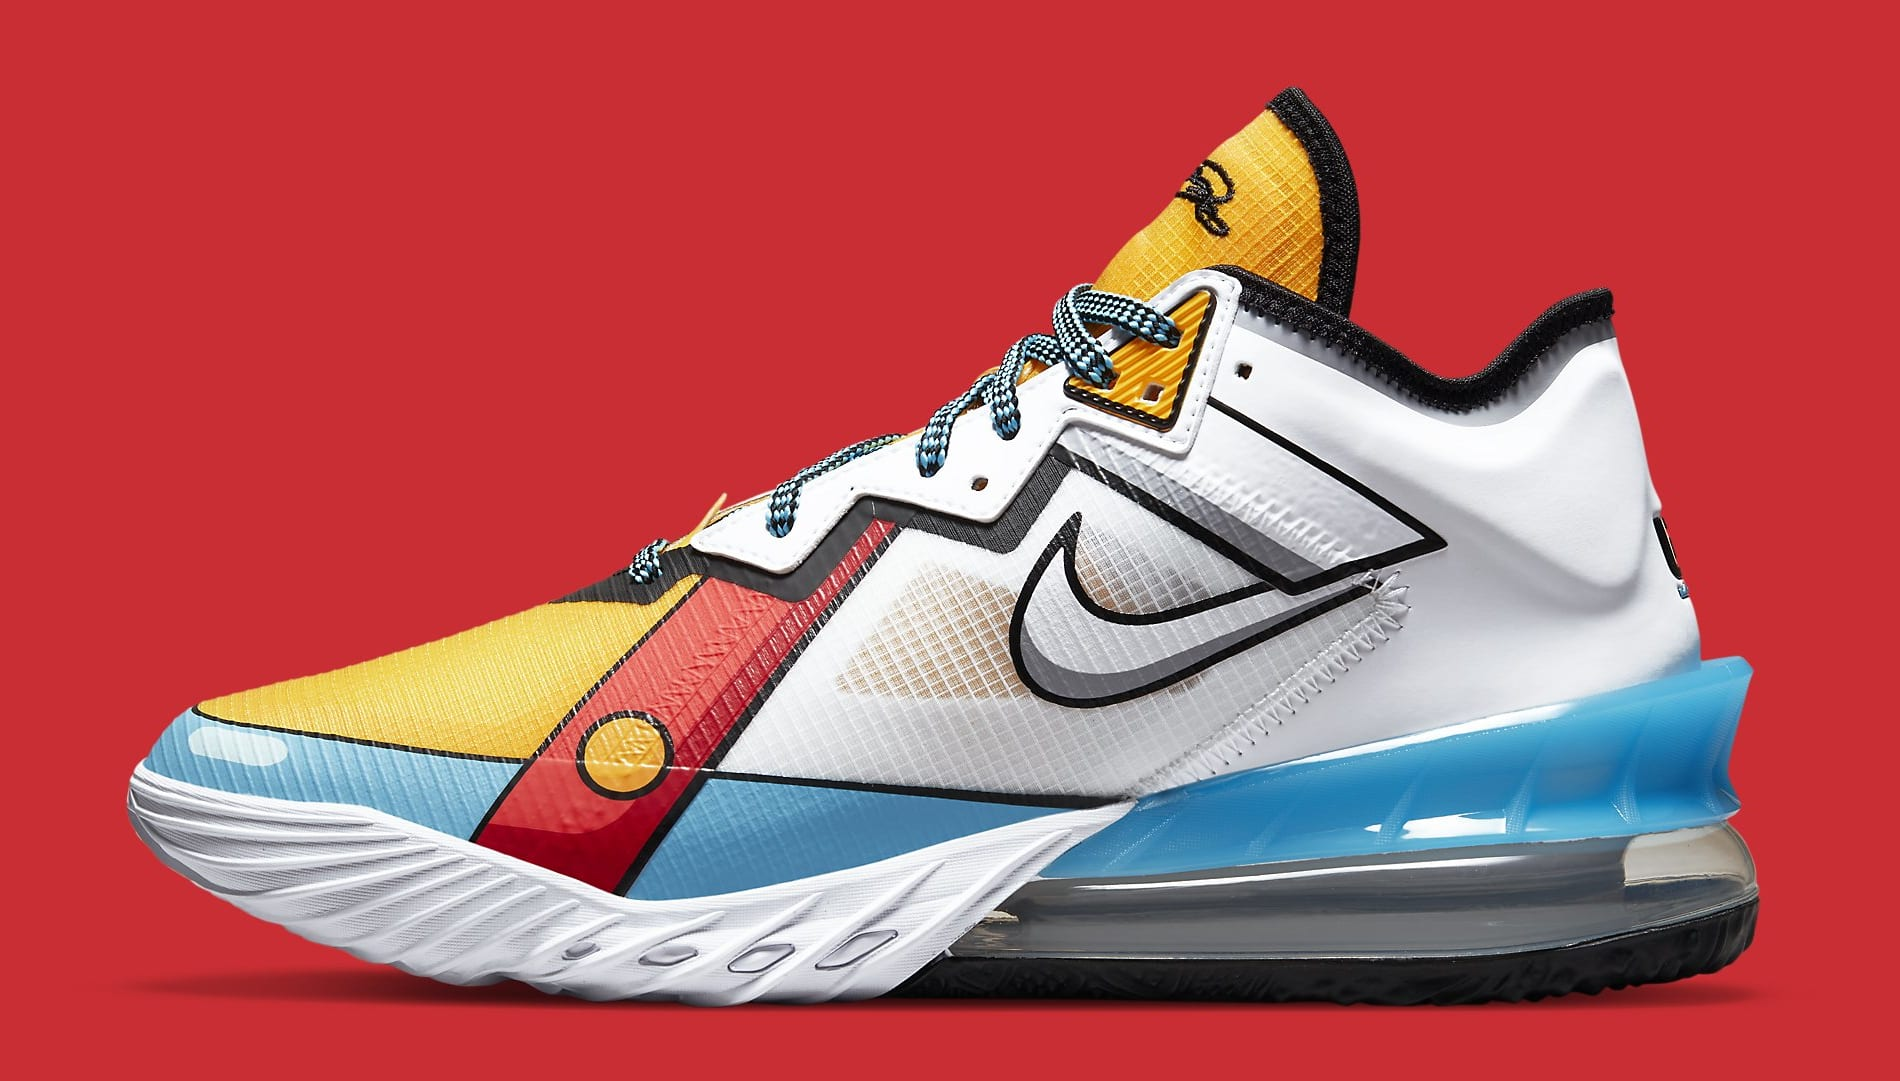 Nike LeBron 18 Low 'Stewie Griffin' CV7564-104 Lateral